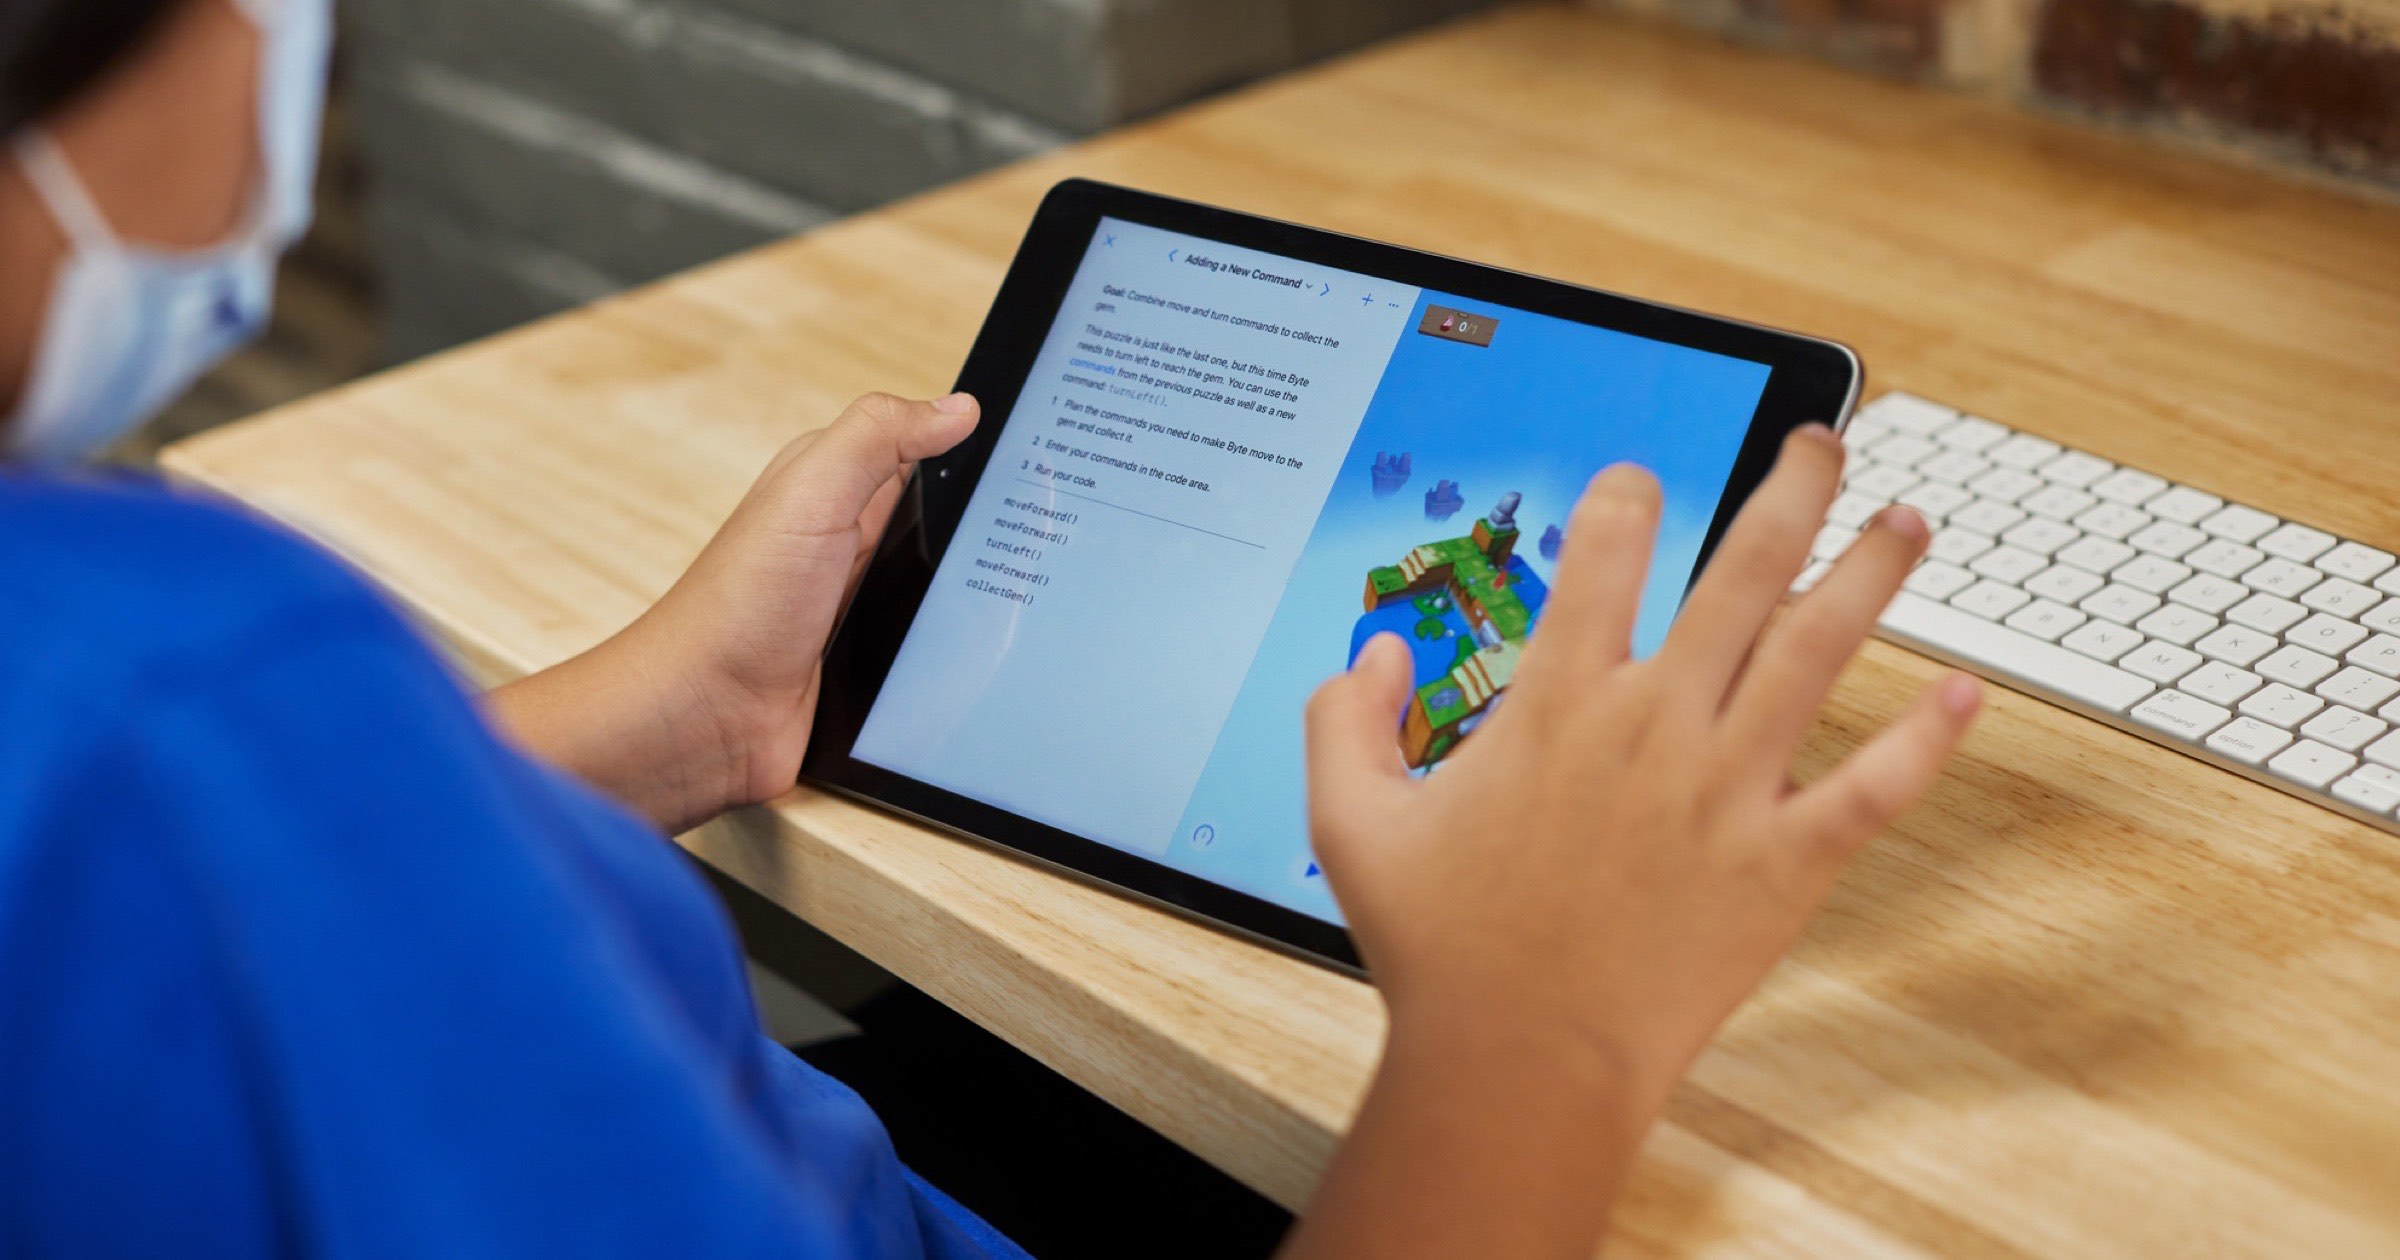 Kid using an iPad to play with Apple's swift playgrounds app.